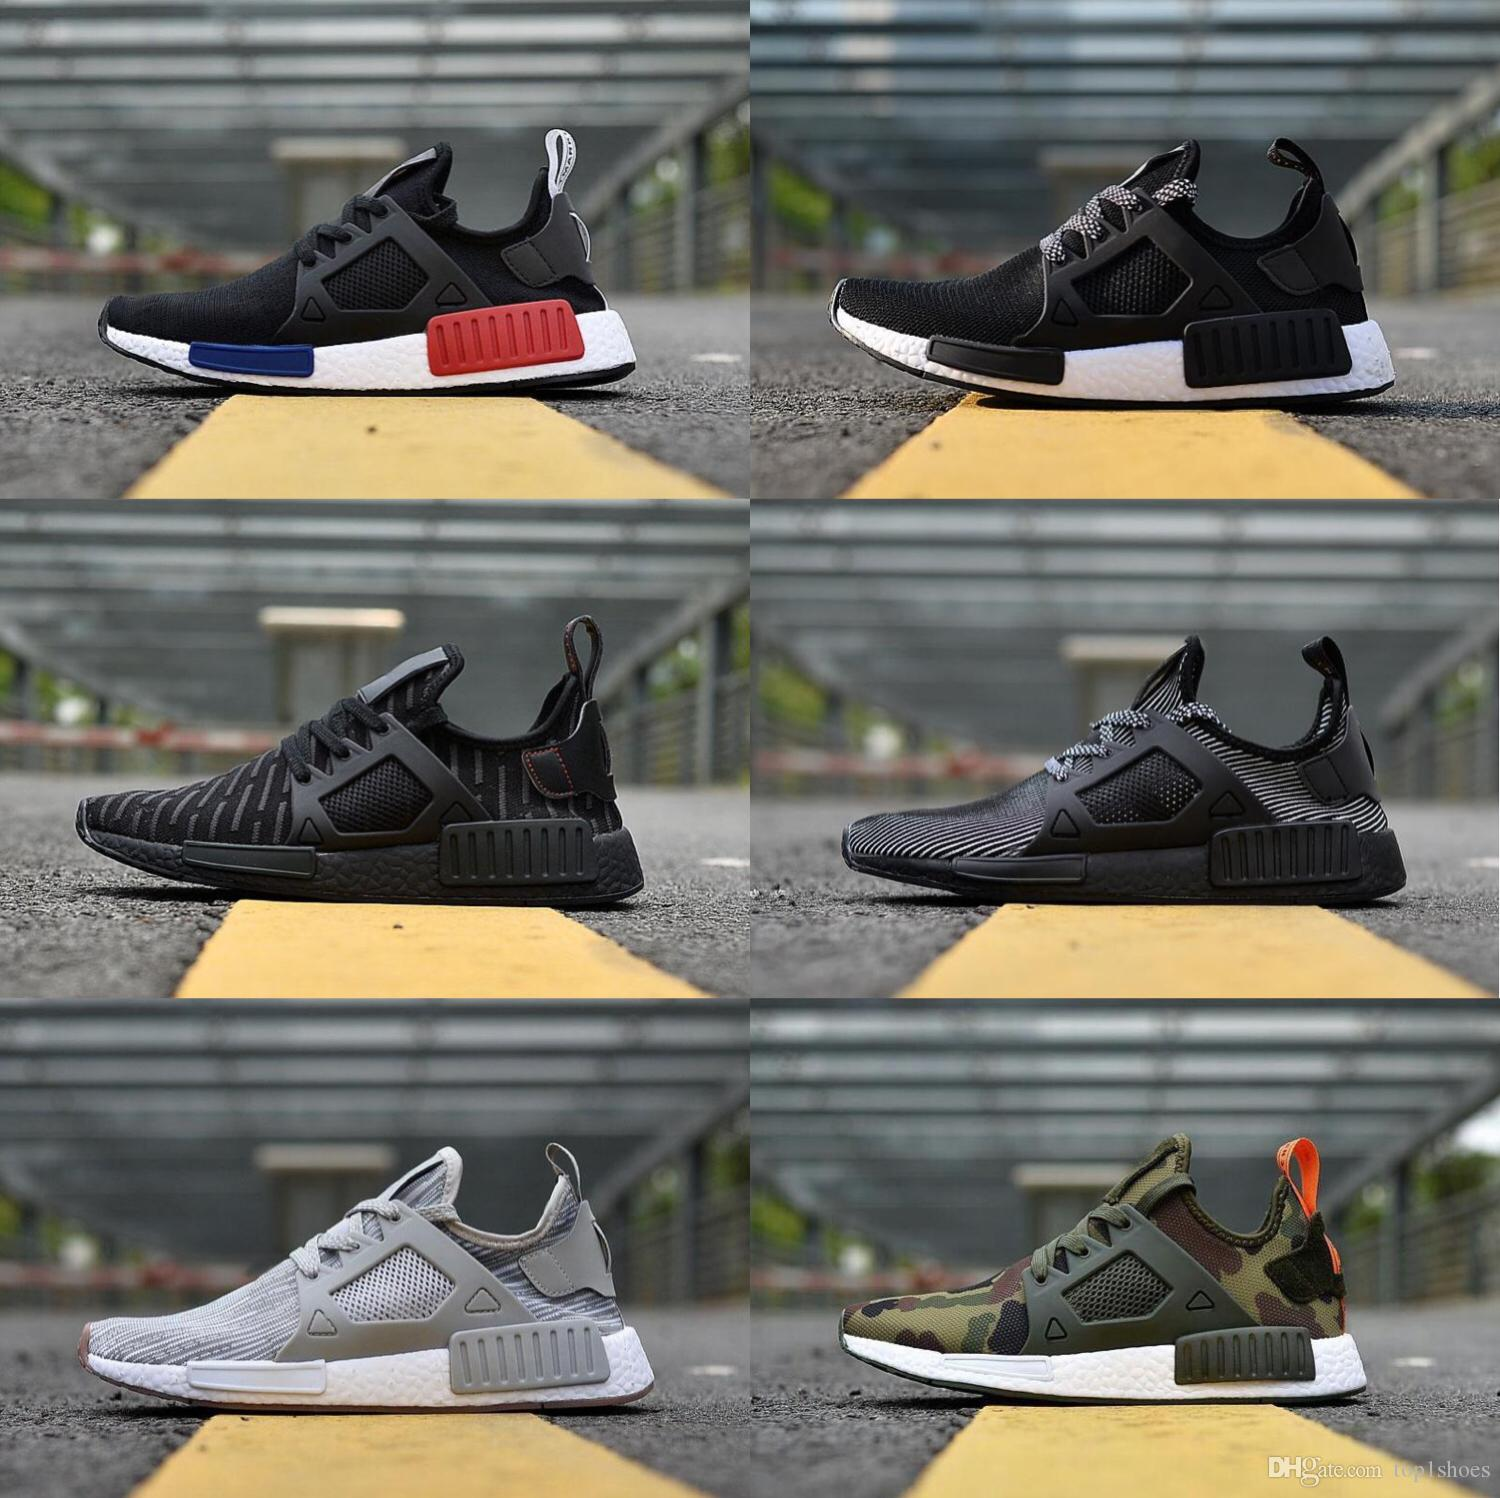 19c6d6019eb45 Cheap Wholesale NMD XR1 PK Running Shoes Wholesale Cheap Sneaker NMD XR1  Primeknit OG PK Zebra Bred Blue Shadow Noise Duck Camo Fall Olive